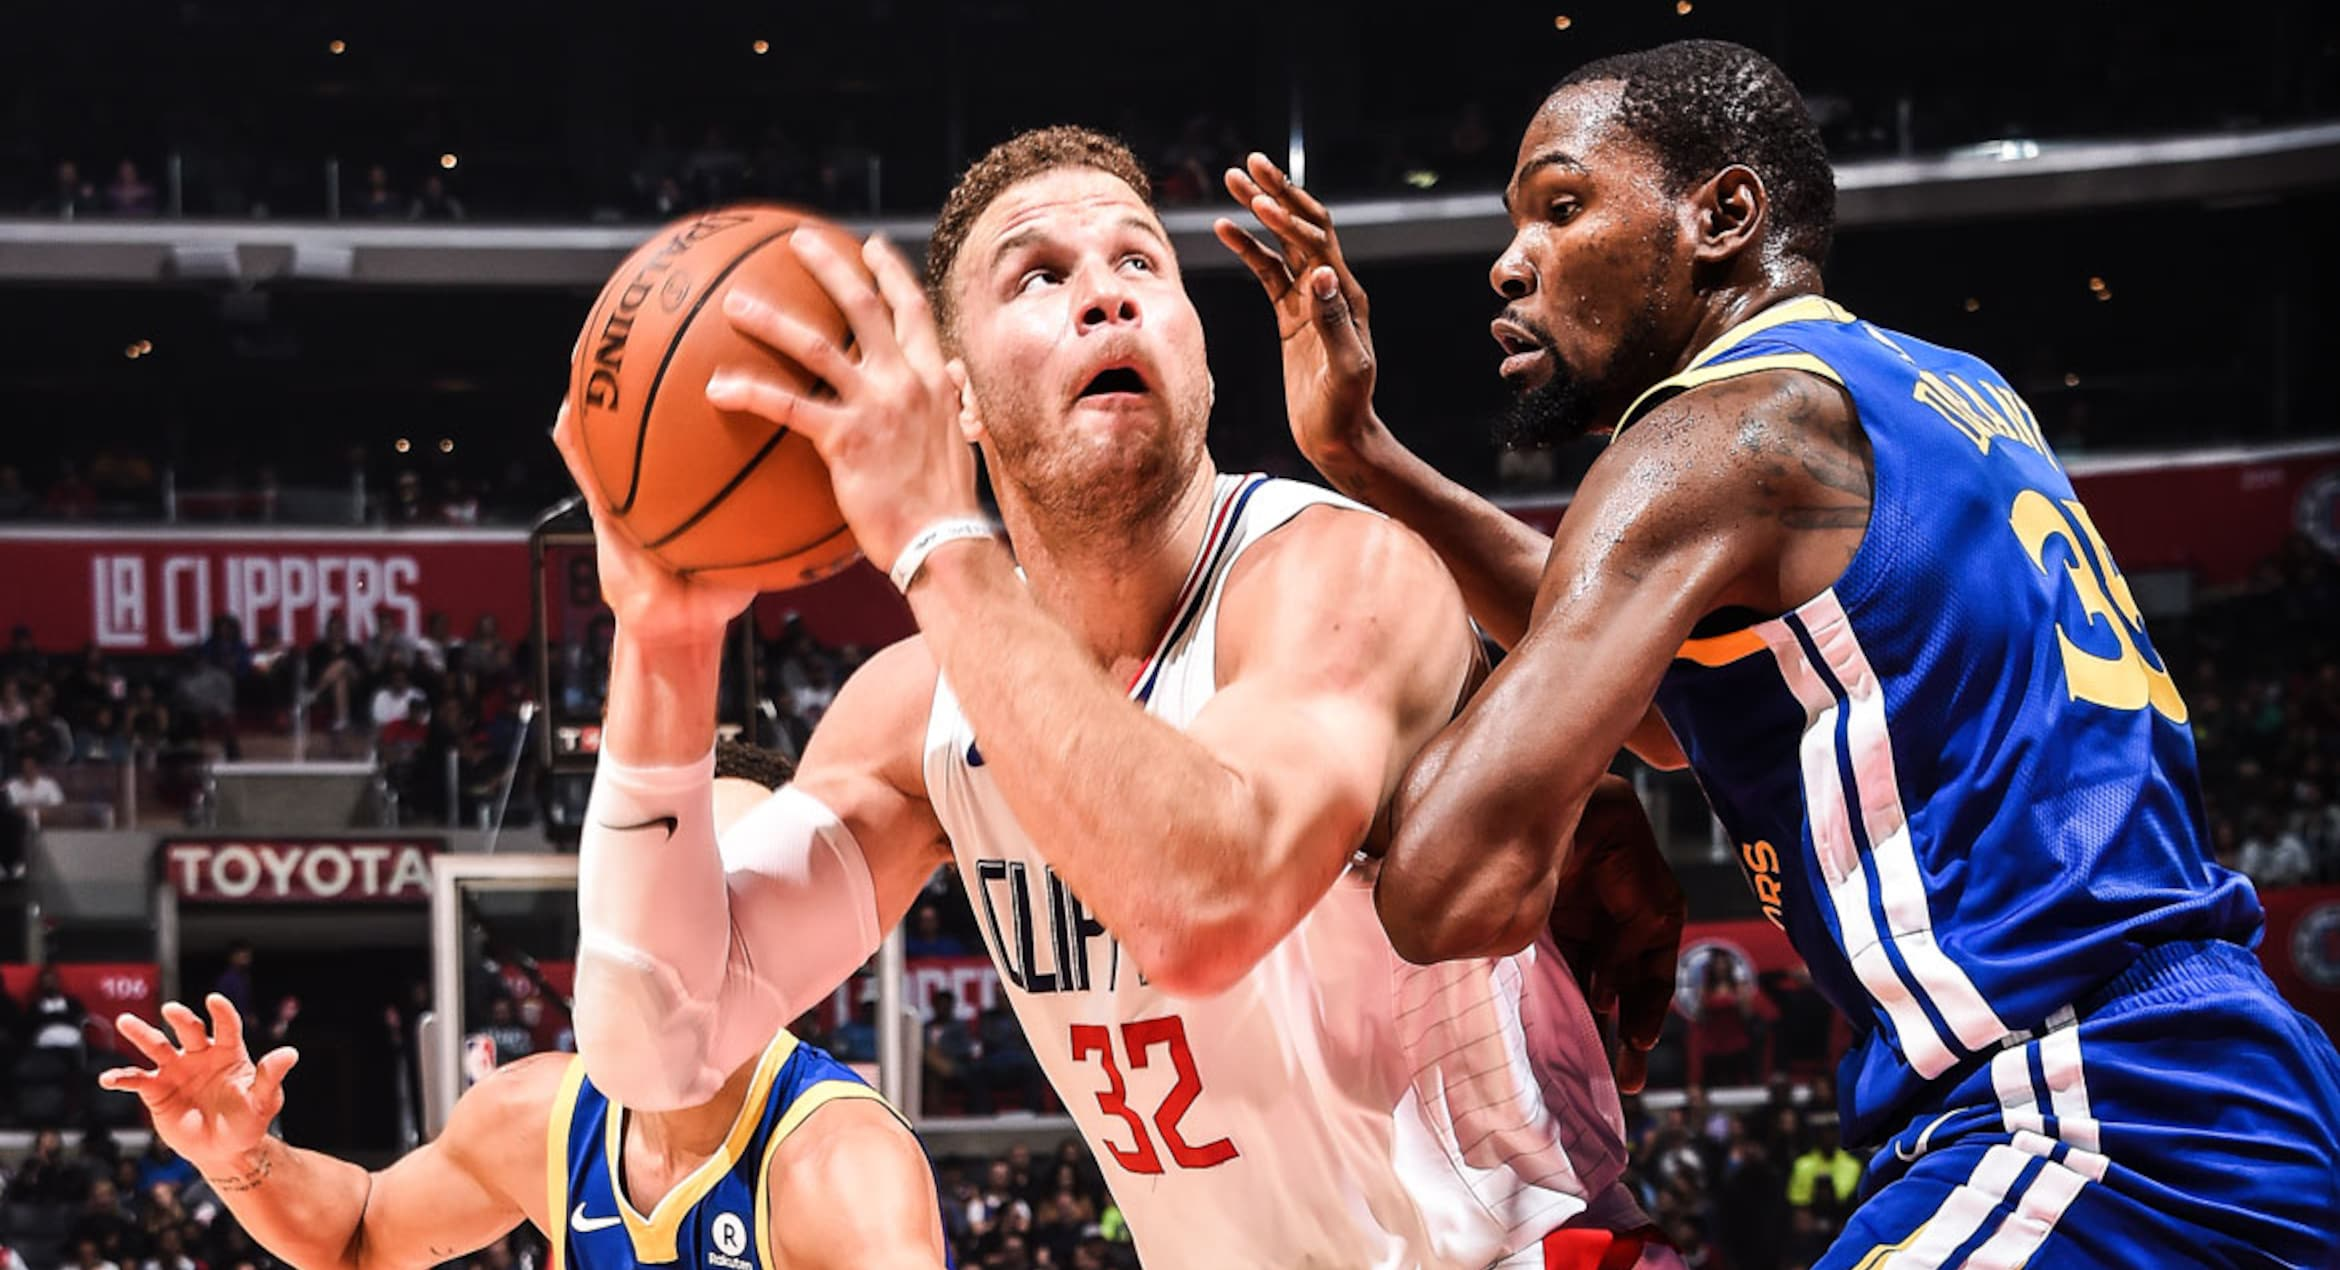 Game Preview: Clippers vs. Warriors